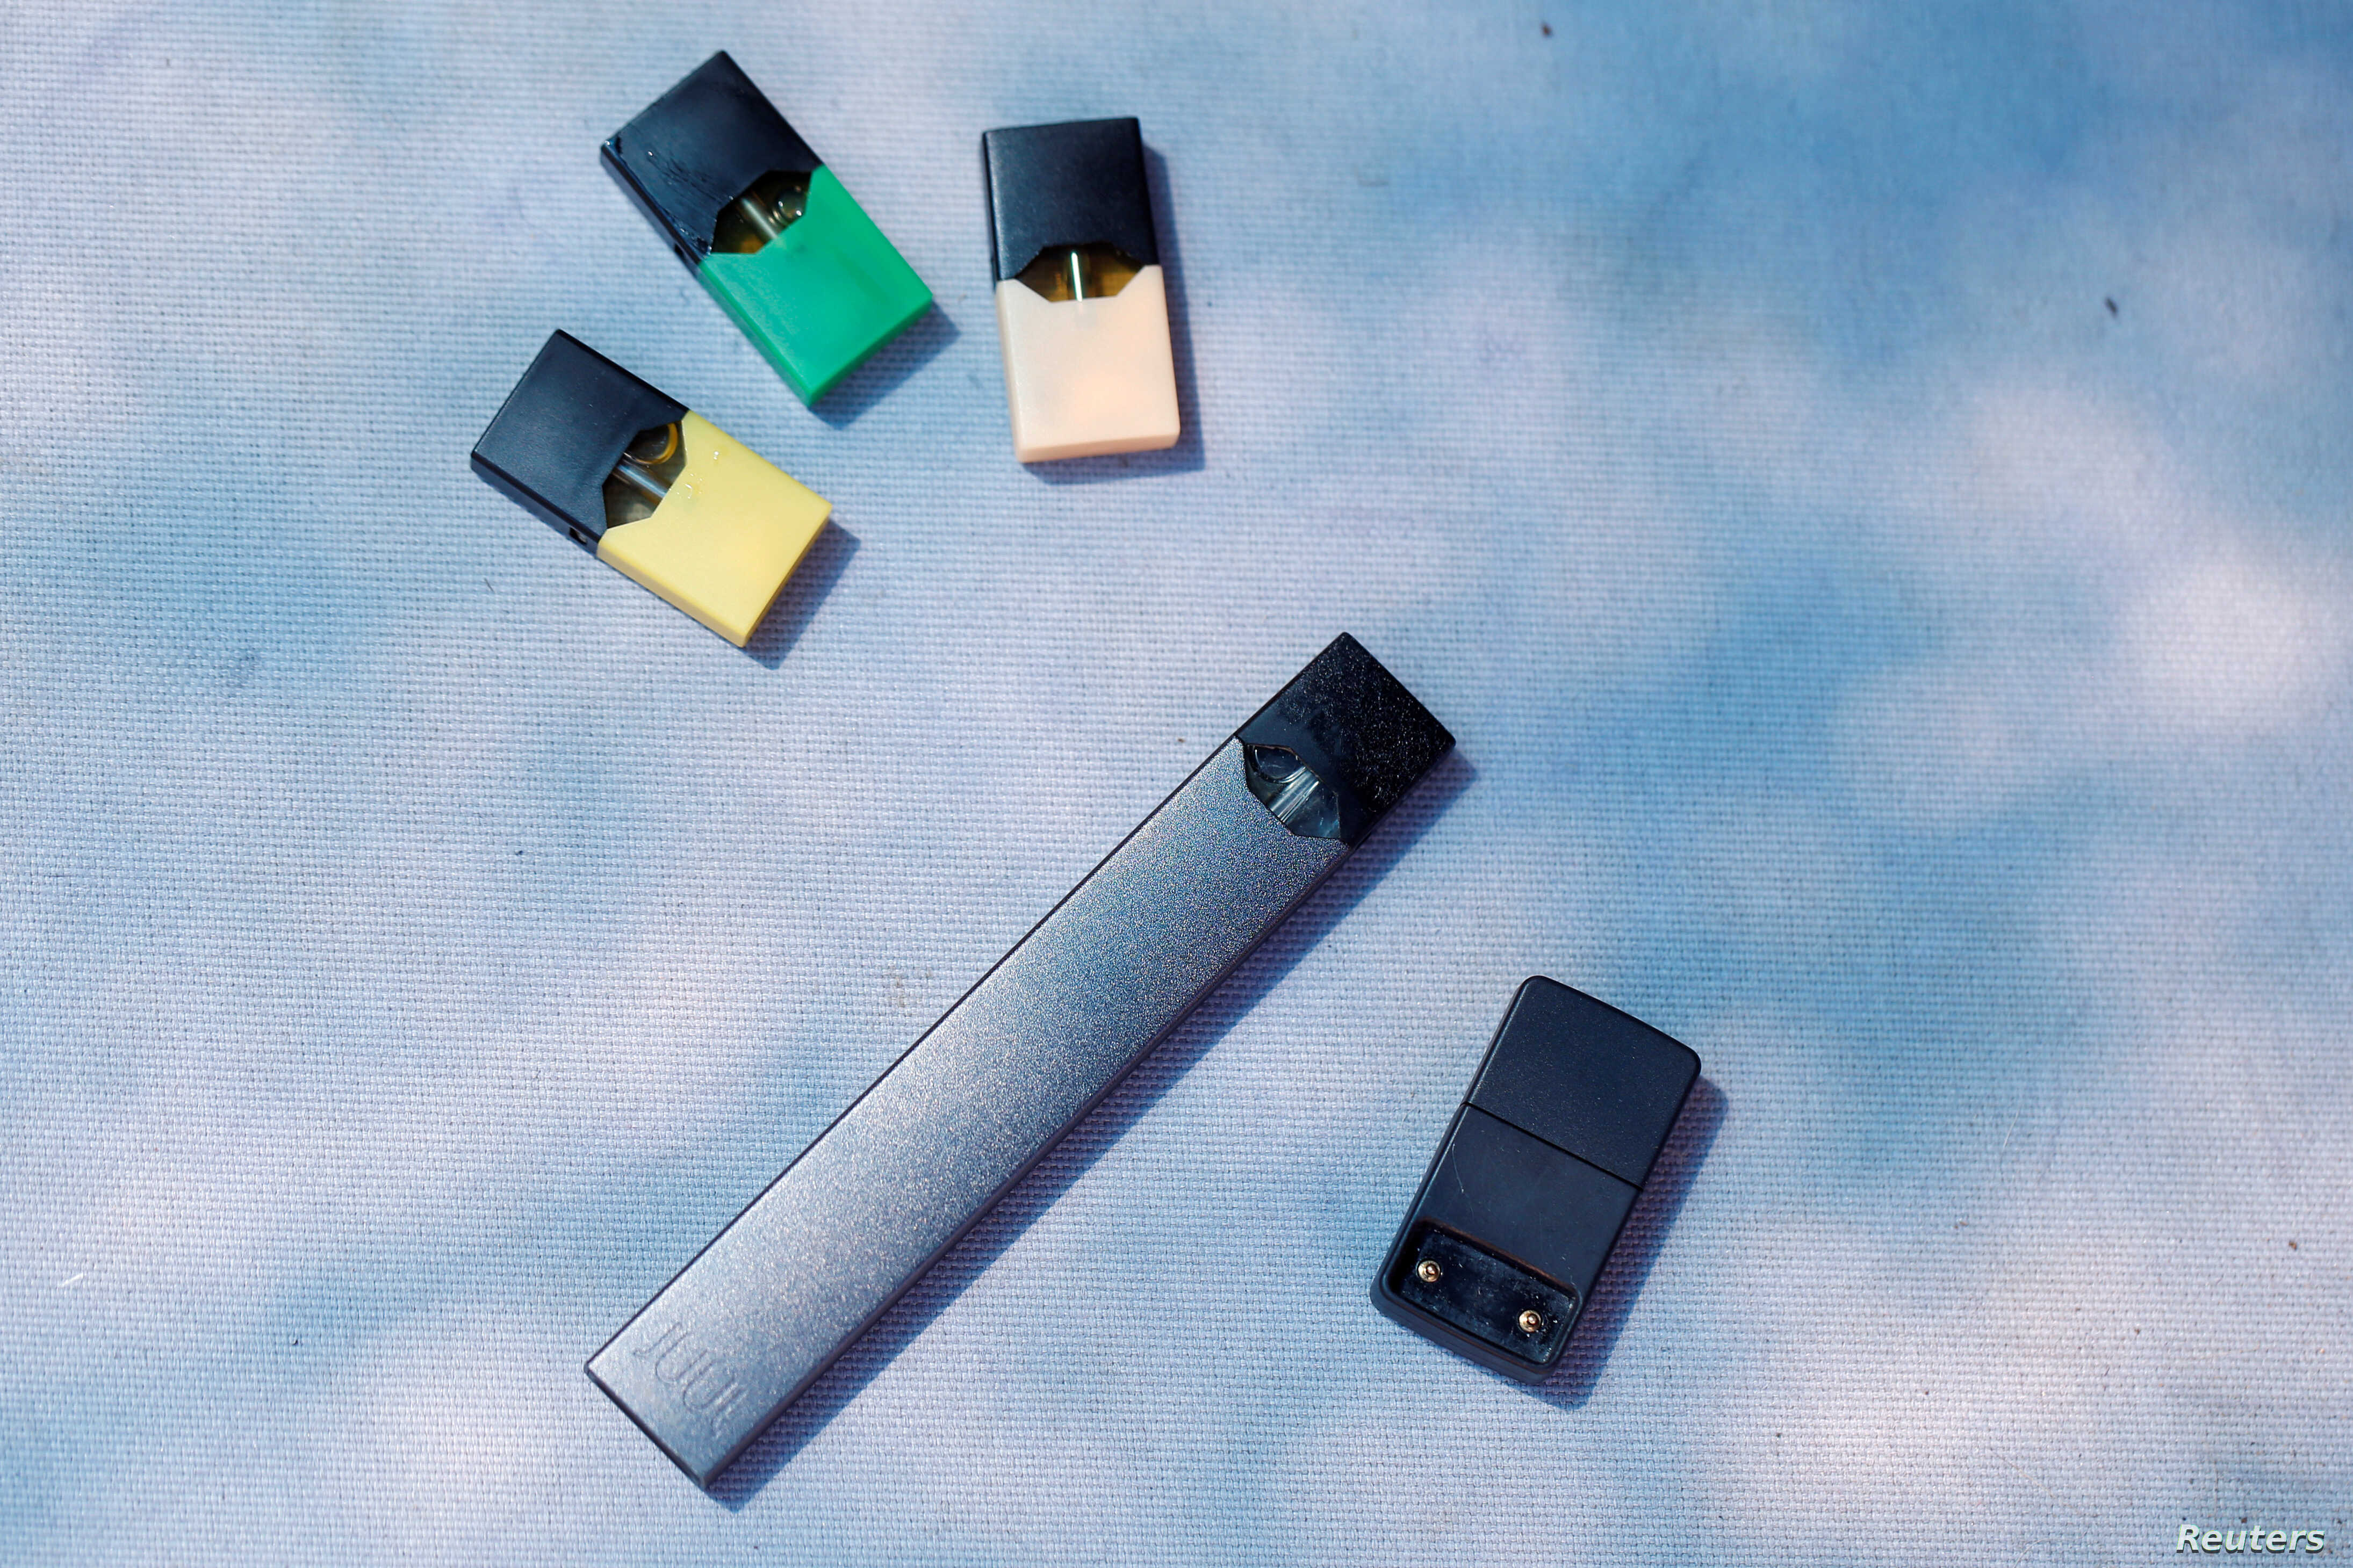 Juul Labs to Pull Sweet E-Cig Flavors to Curb Youth Use